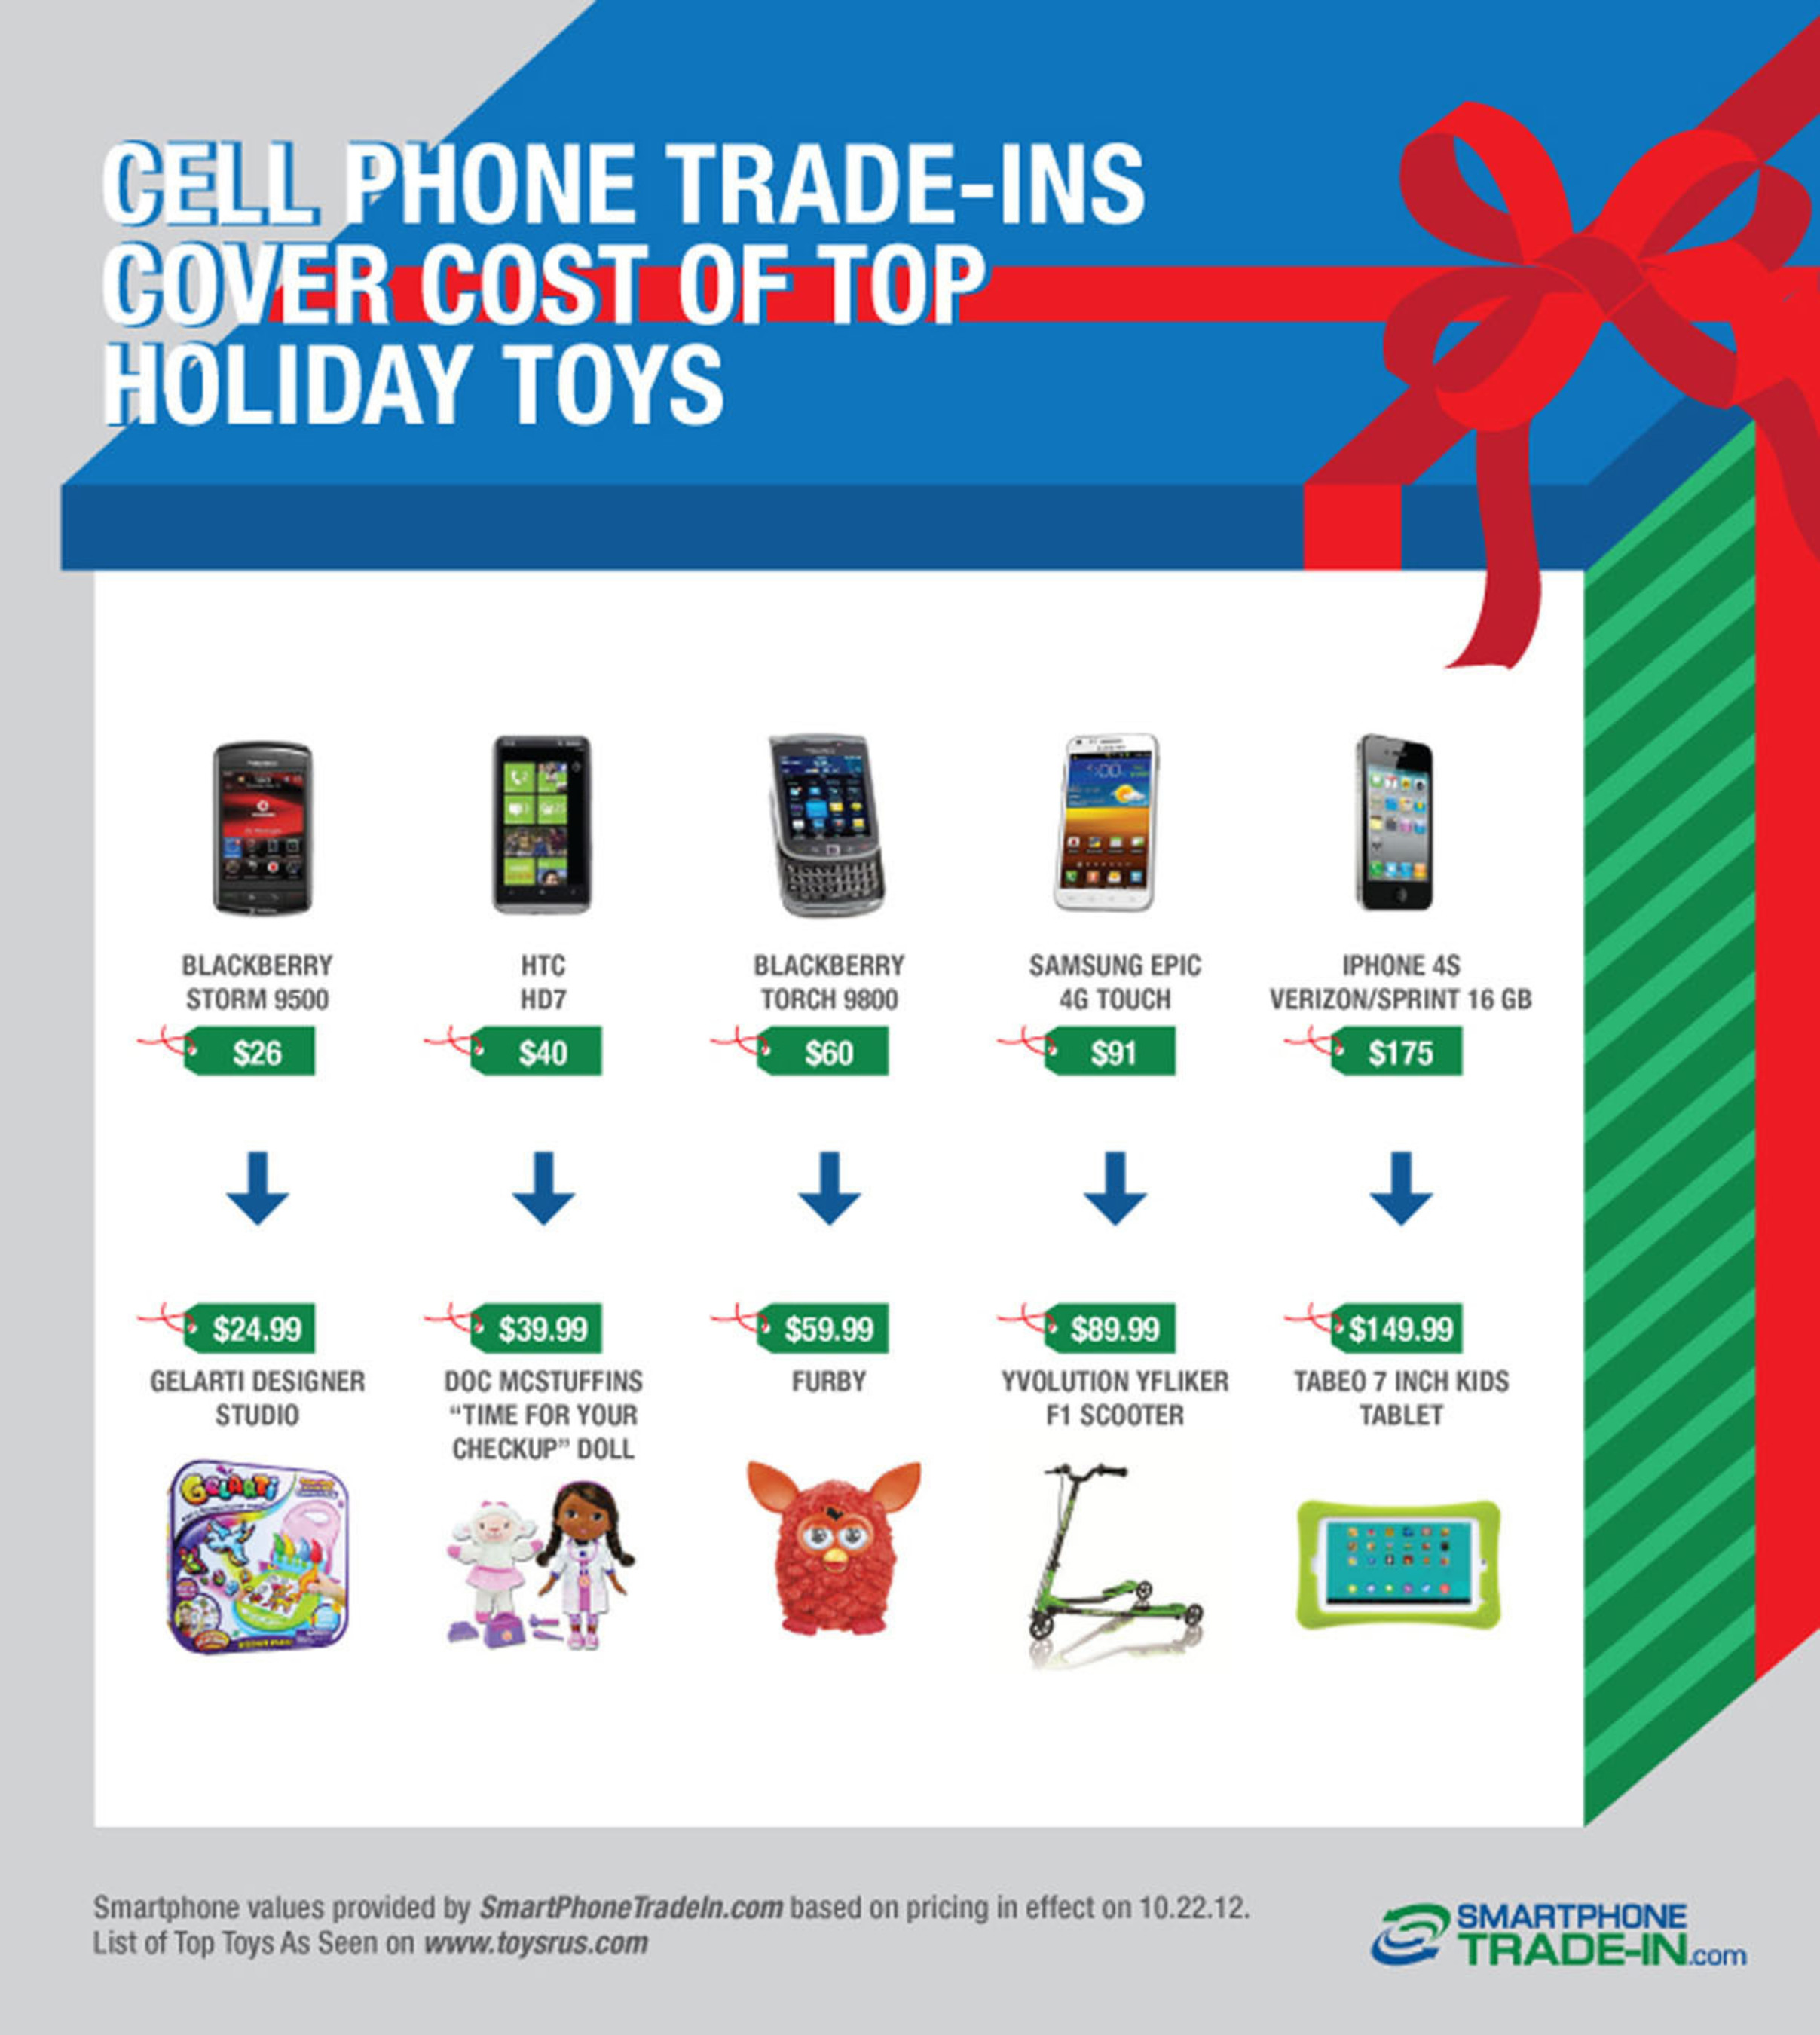 SmartphoneTradeIn.com: Smartphone Trade-Ins Can Cover Cost of 10 Top Holiday Toys